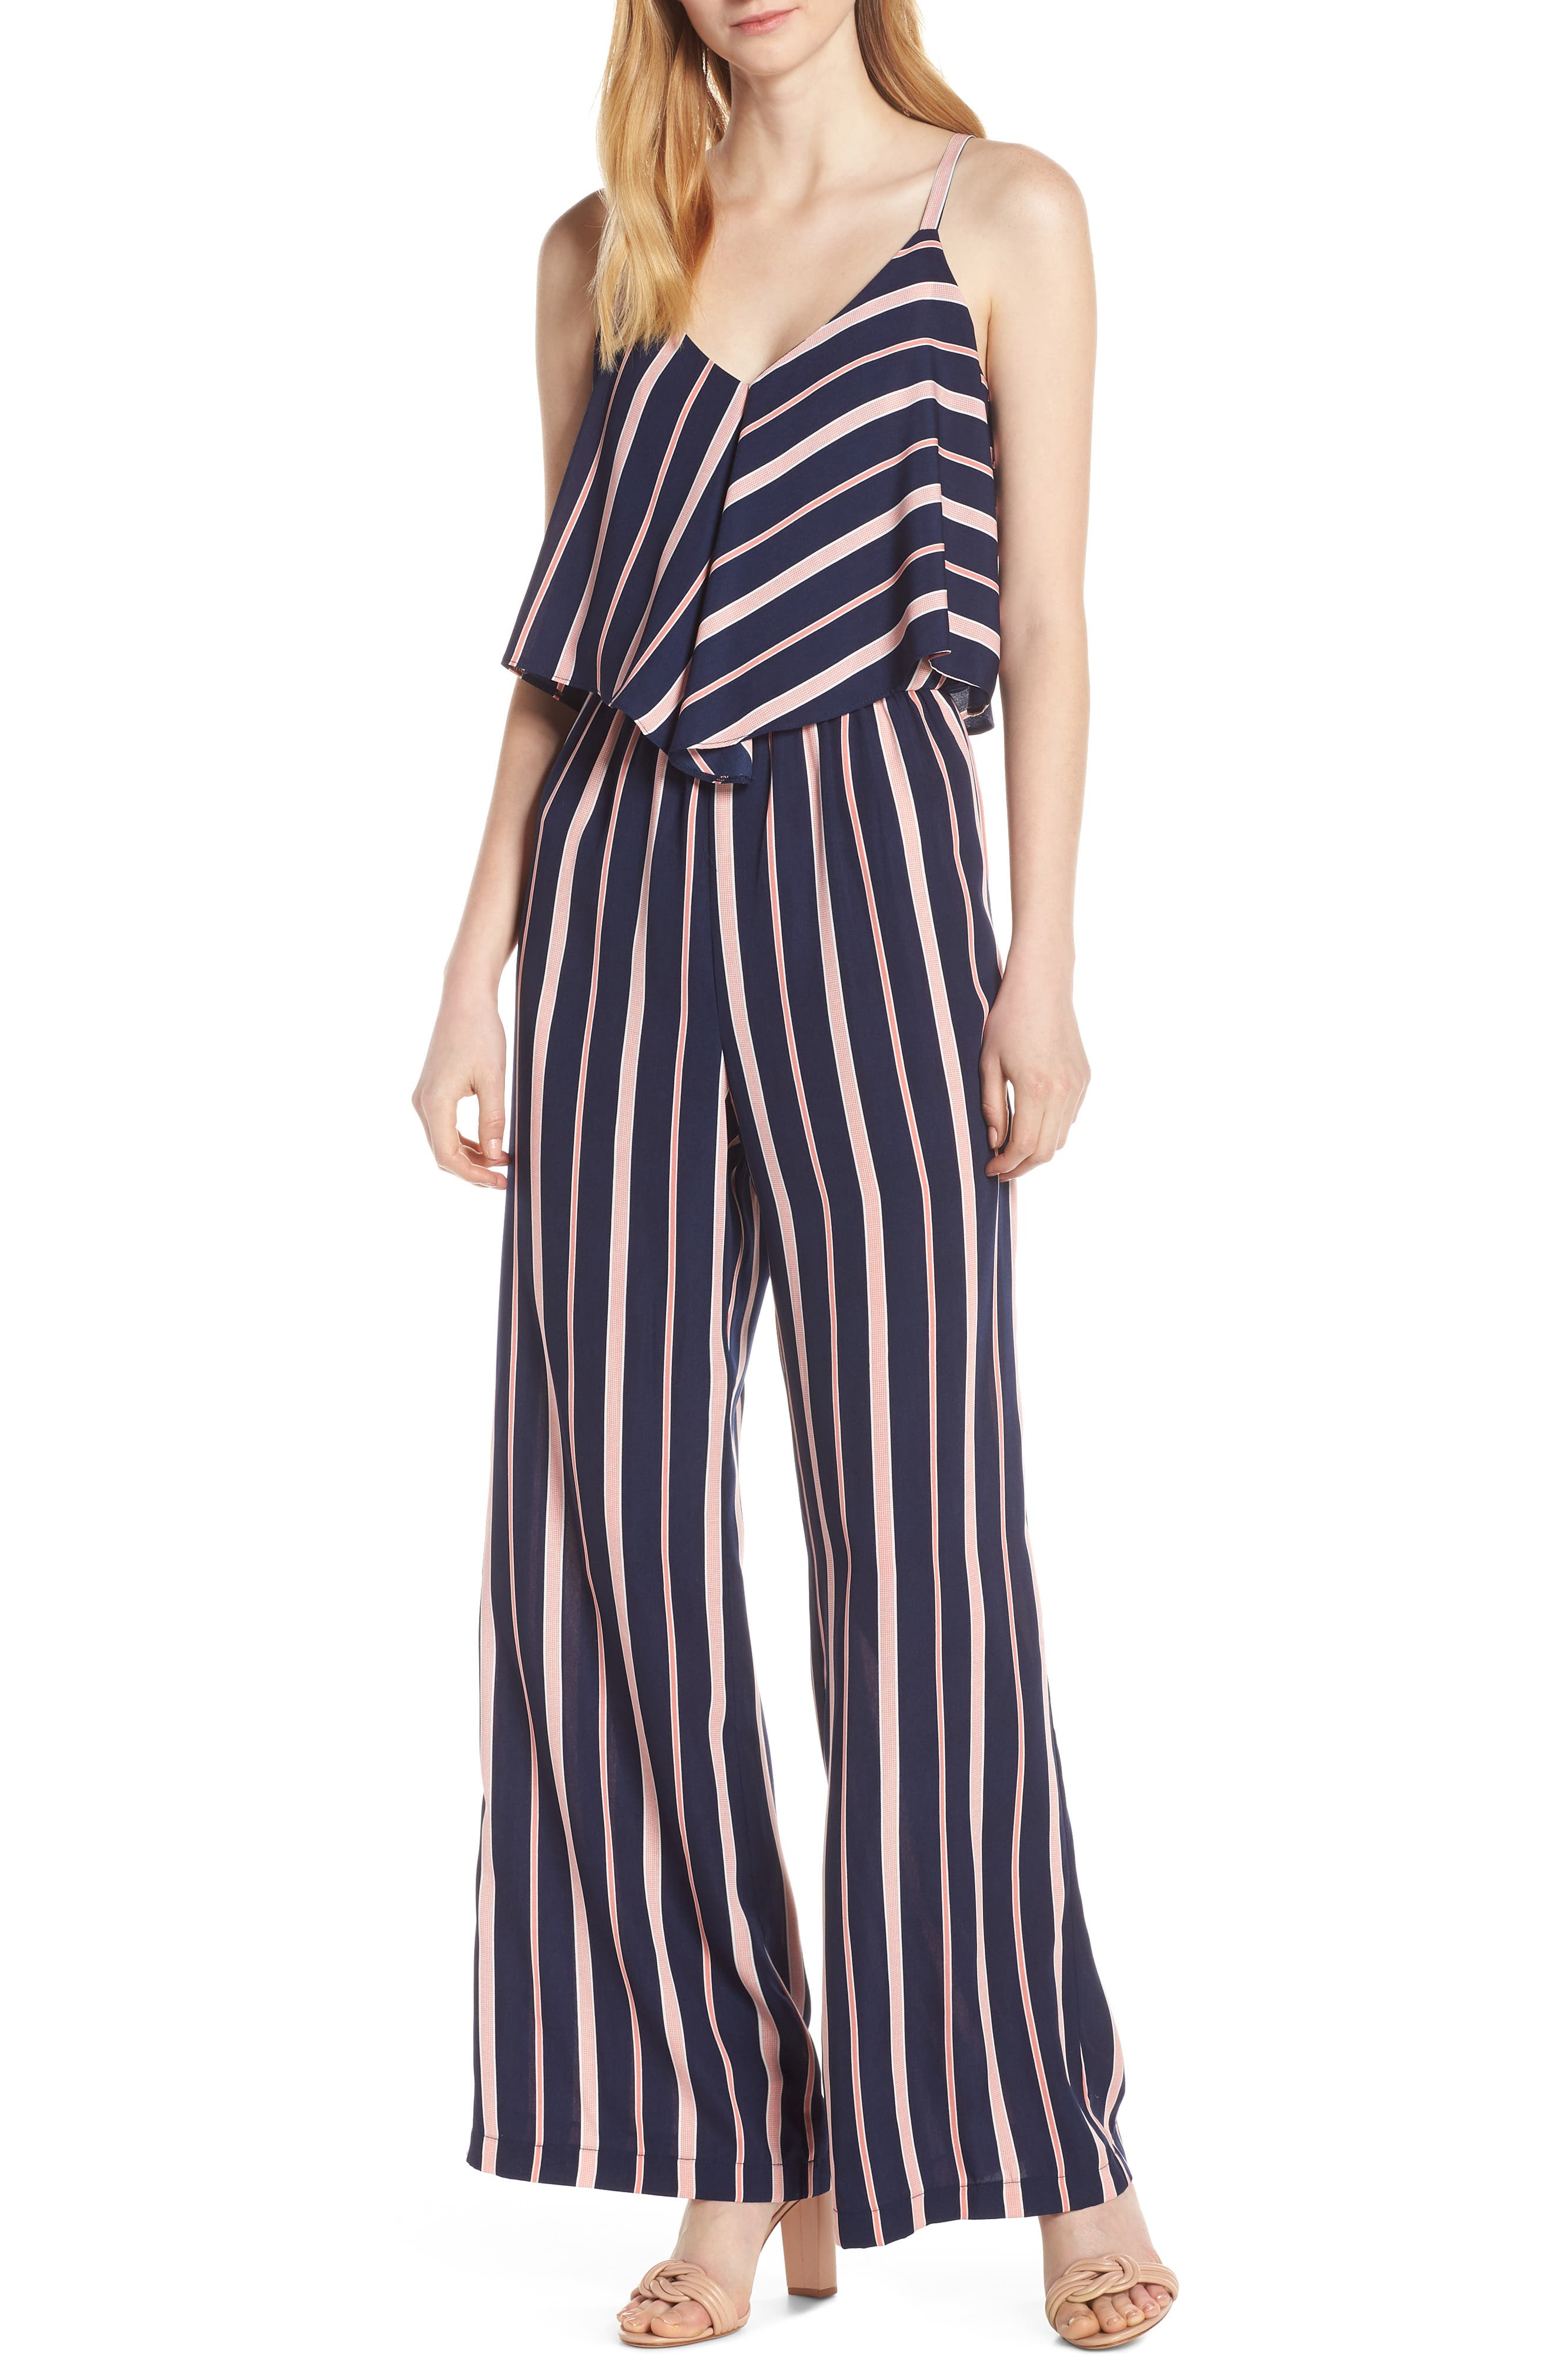 CHARLES HENRY, Stripe Popover Jumpsuit, Main thumbnail 1, color, 418